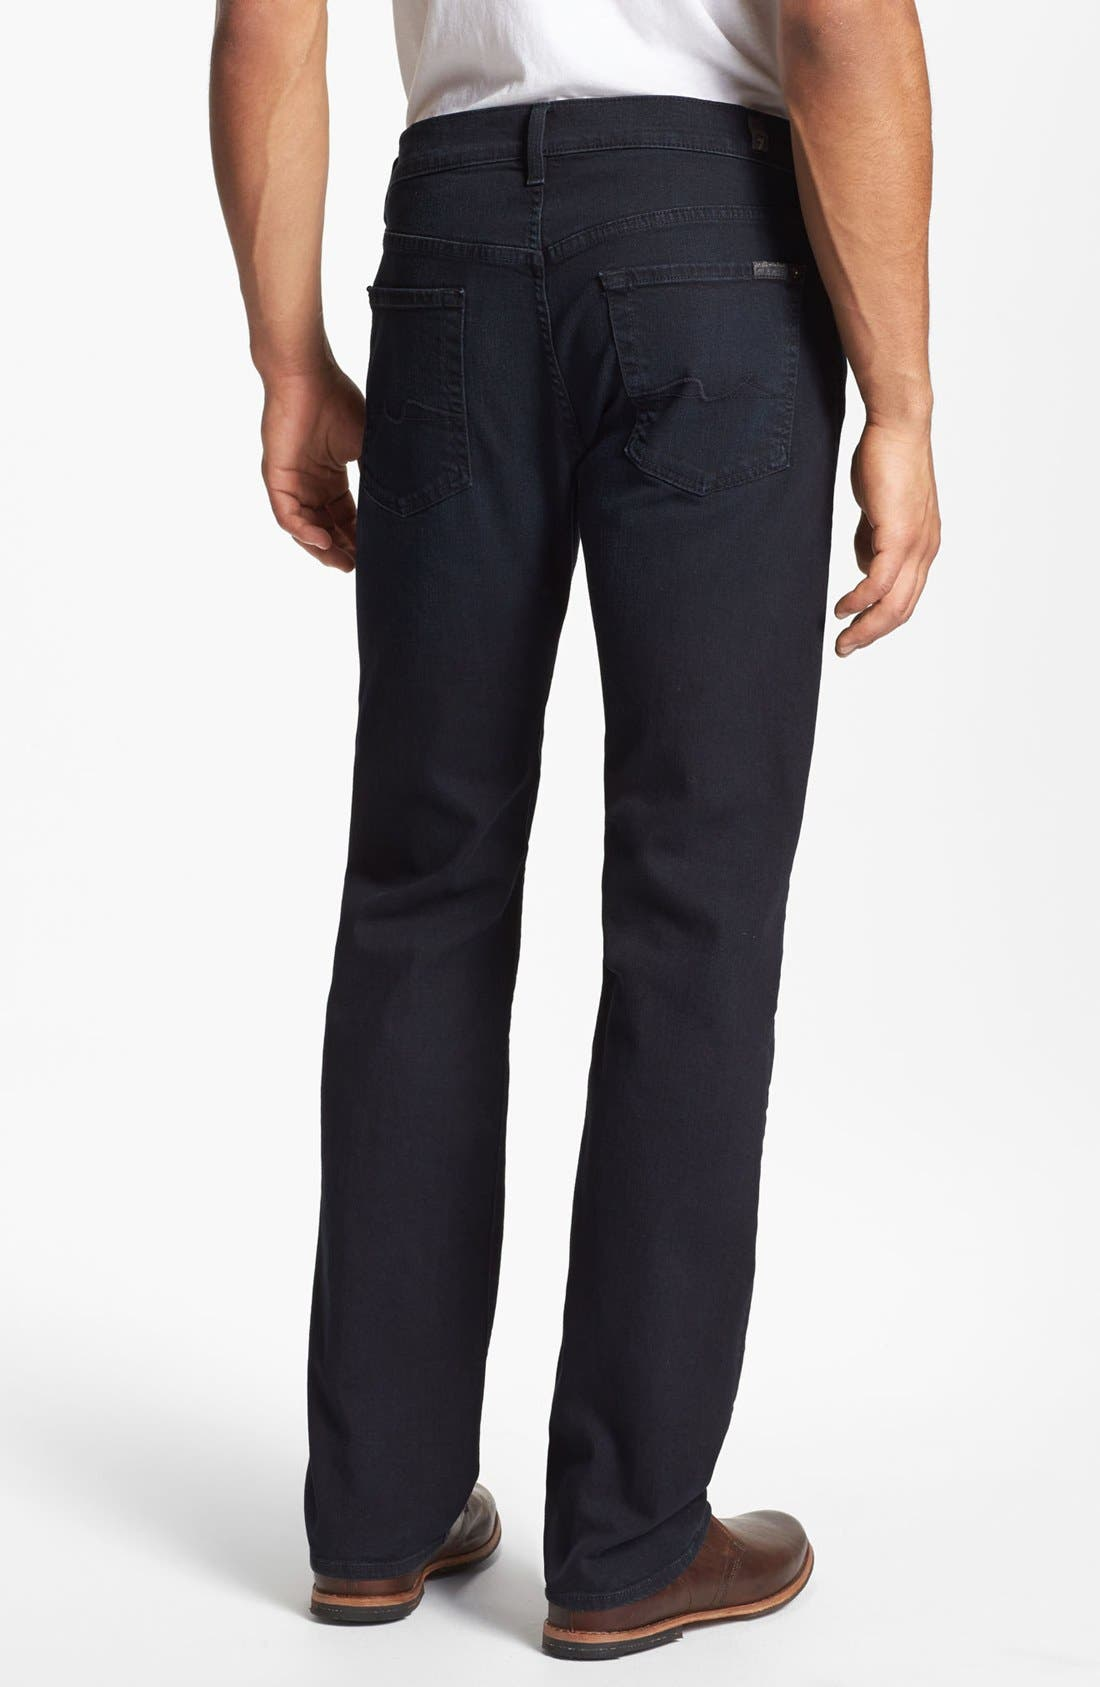 Alternate Image 1 Selected - 7 For All Mankind® 'Standard' Straight Leg Jeans (Castaic Lake)